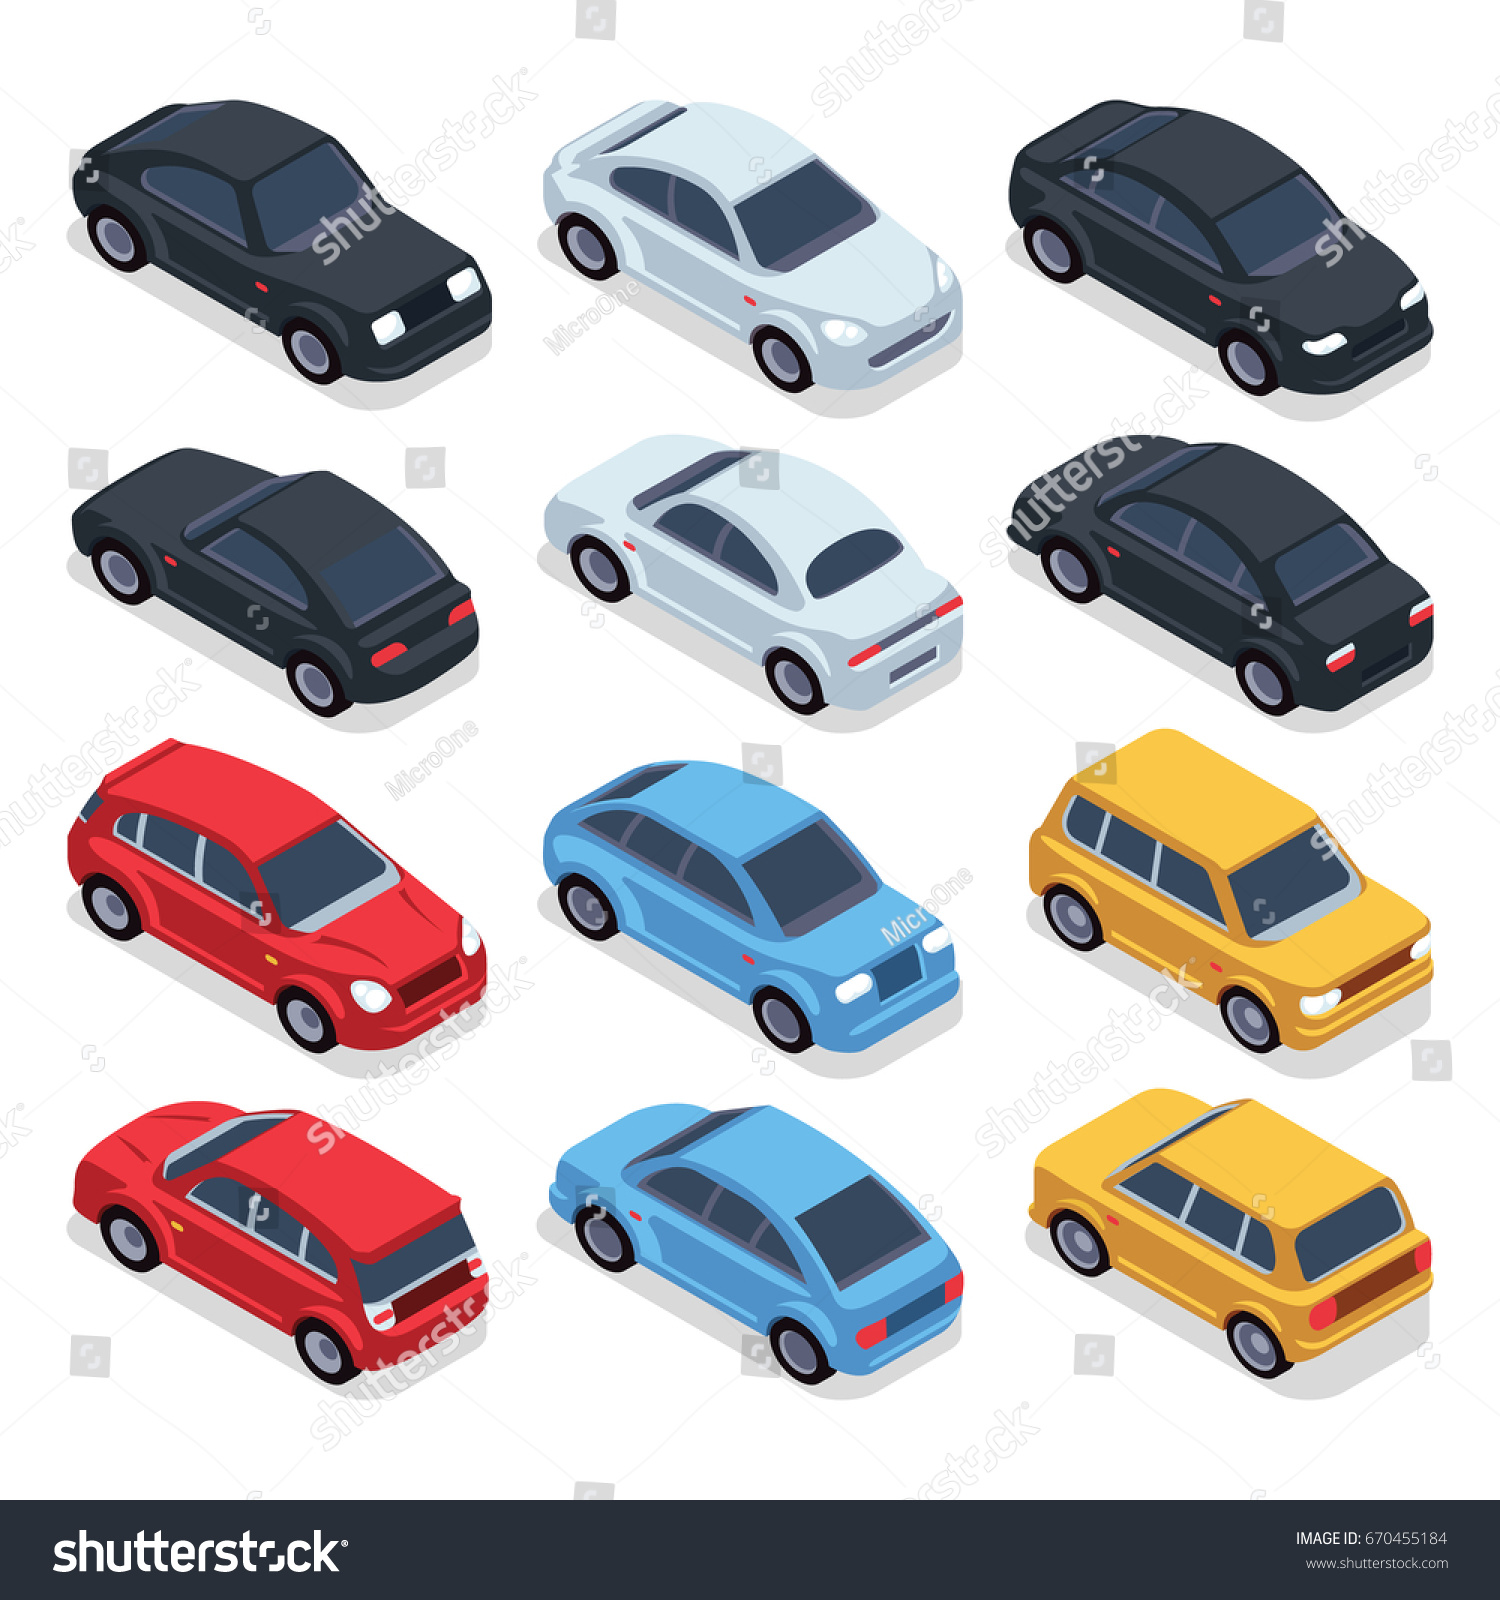 technology and transportation Most popular automobile emerged 1930 transportation the roaring 20's 1920 1925 the 1920's were the years of economic growth and decline the time of development a.